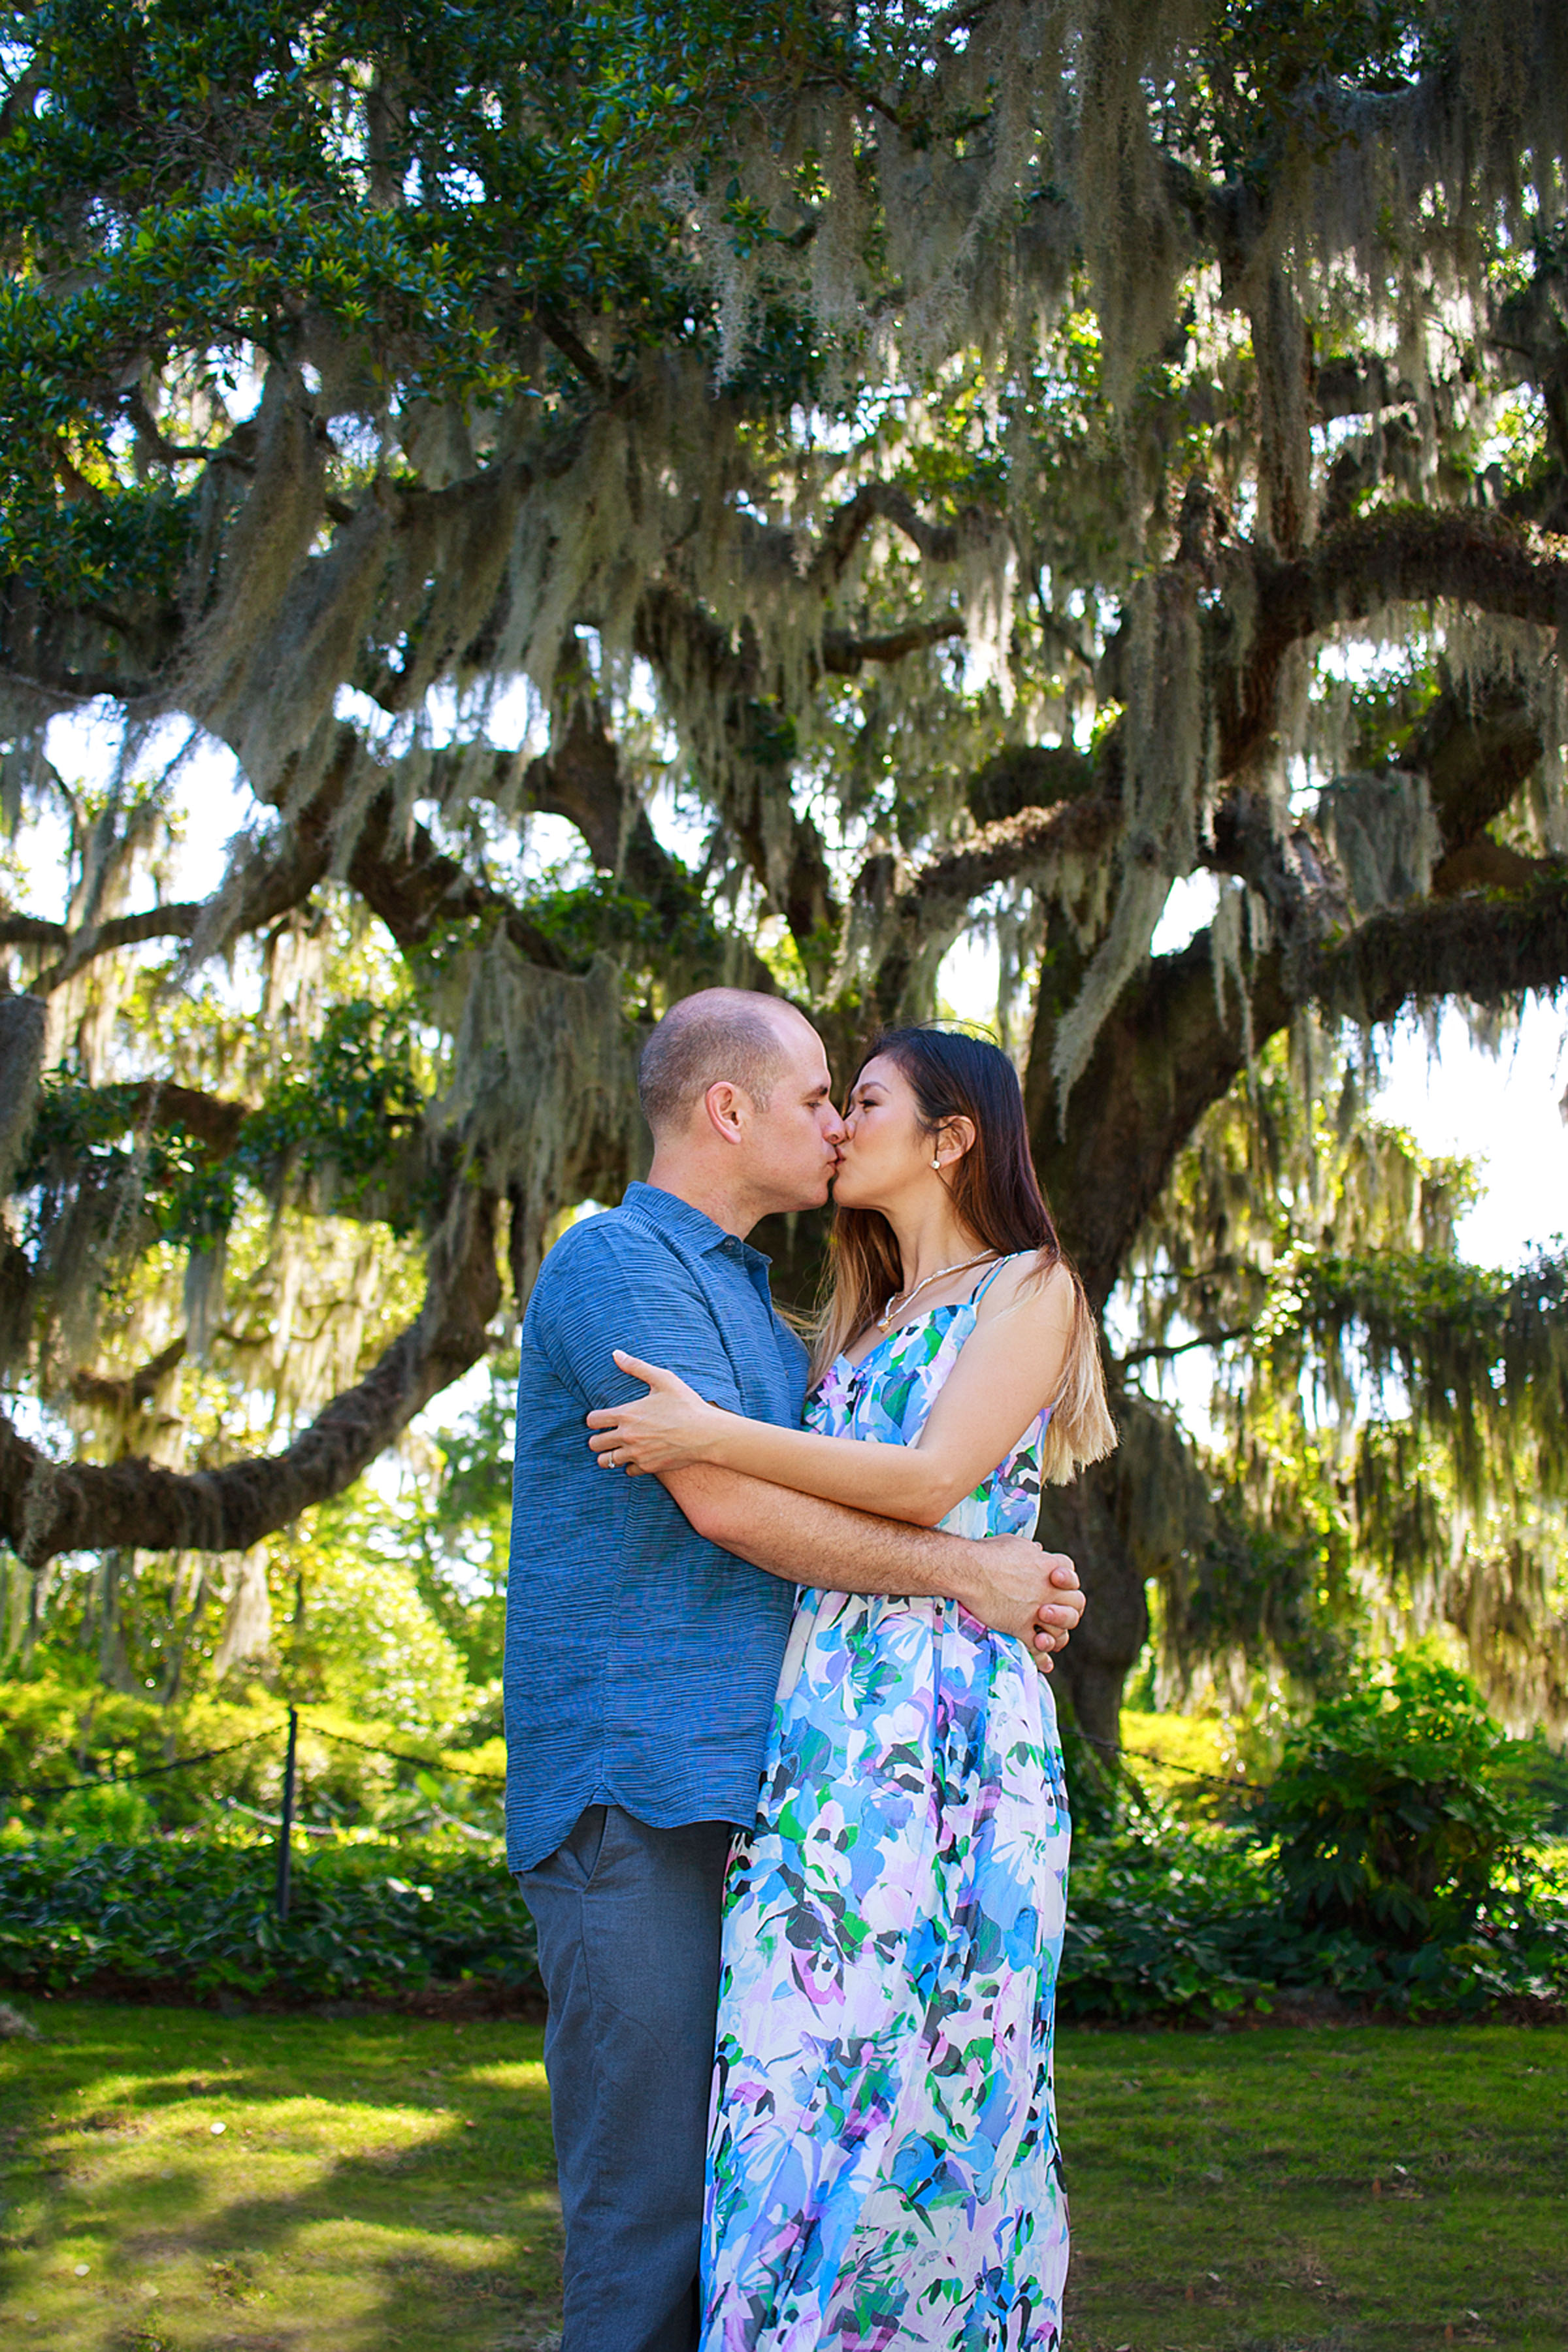 Airlie_Gardens_Engagement_Photography_Brian_&_Amy_59.jpg